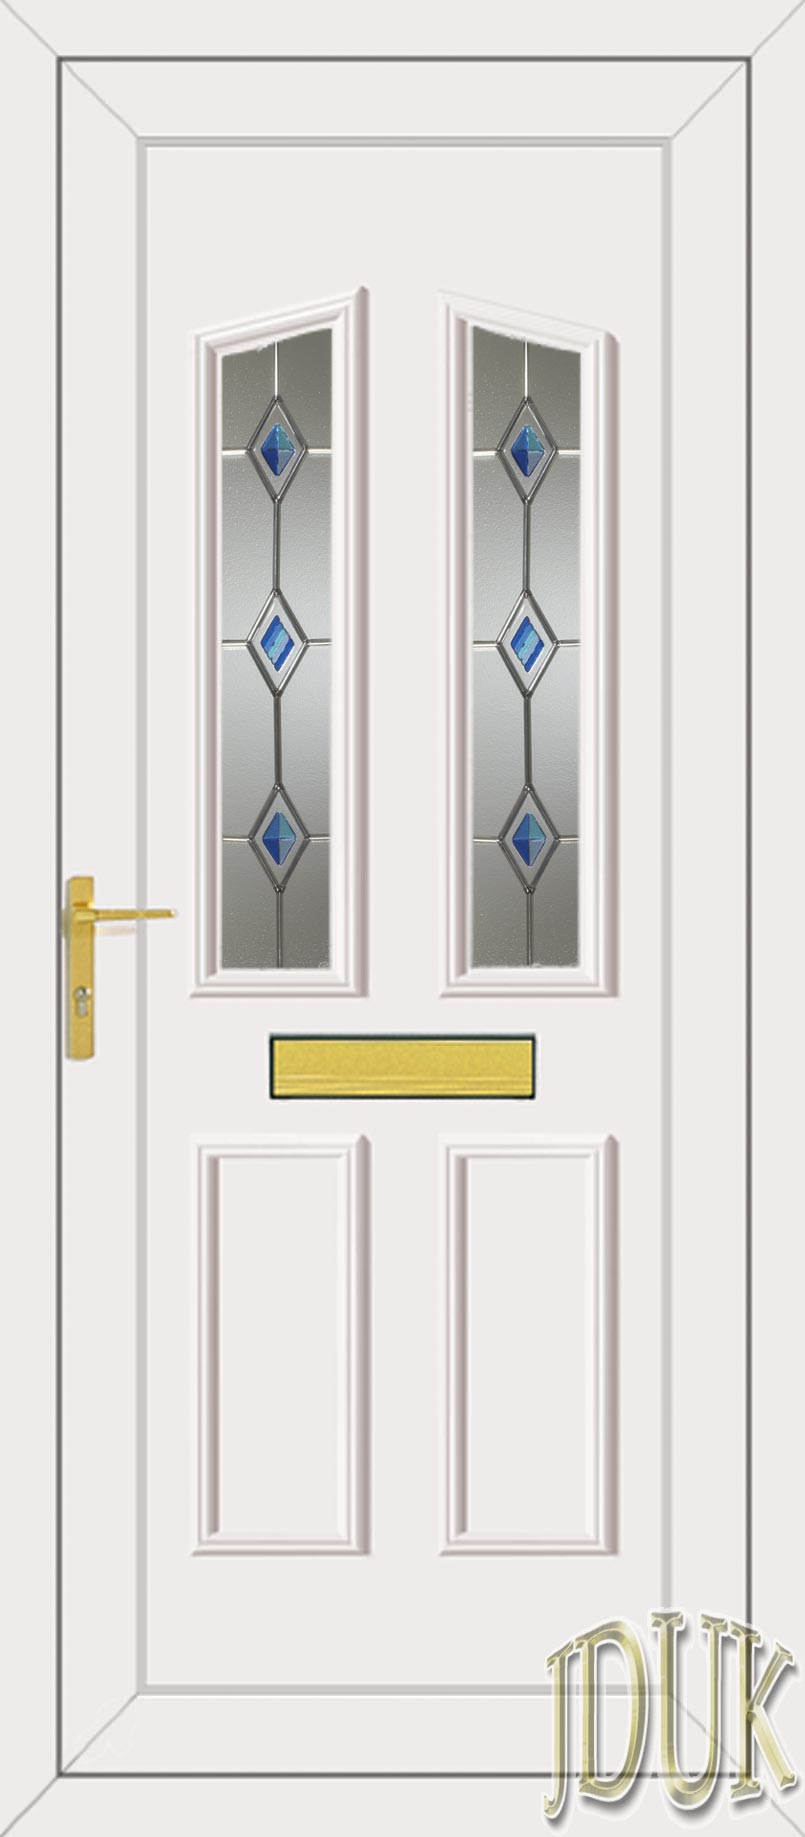 Clinton two blue fusion silver upvc front door for Upvc front doors